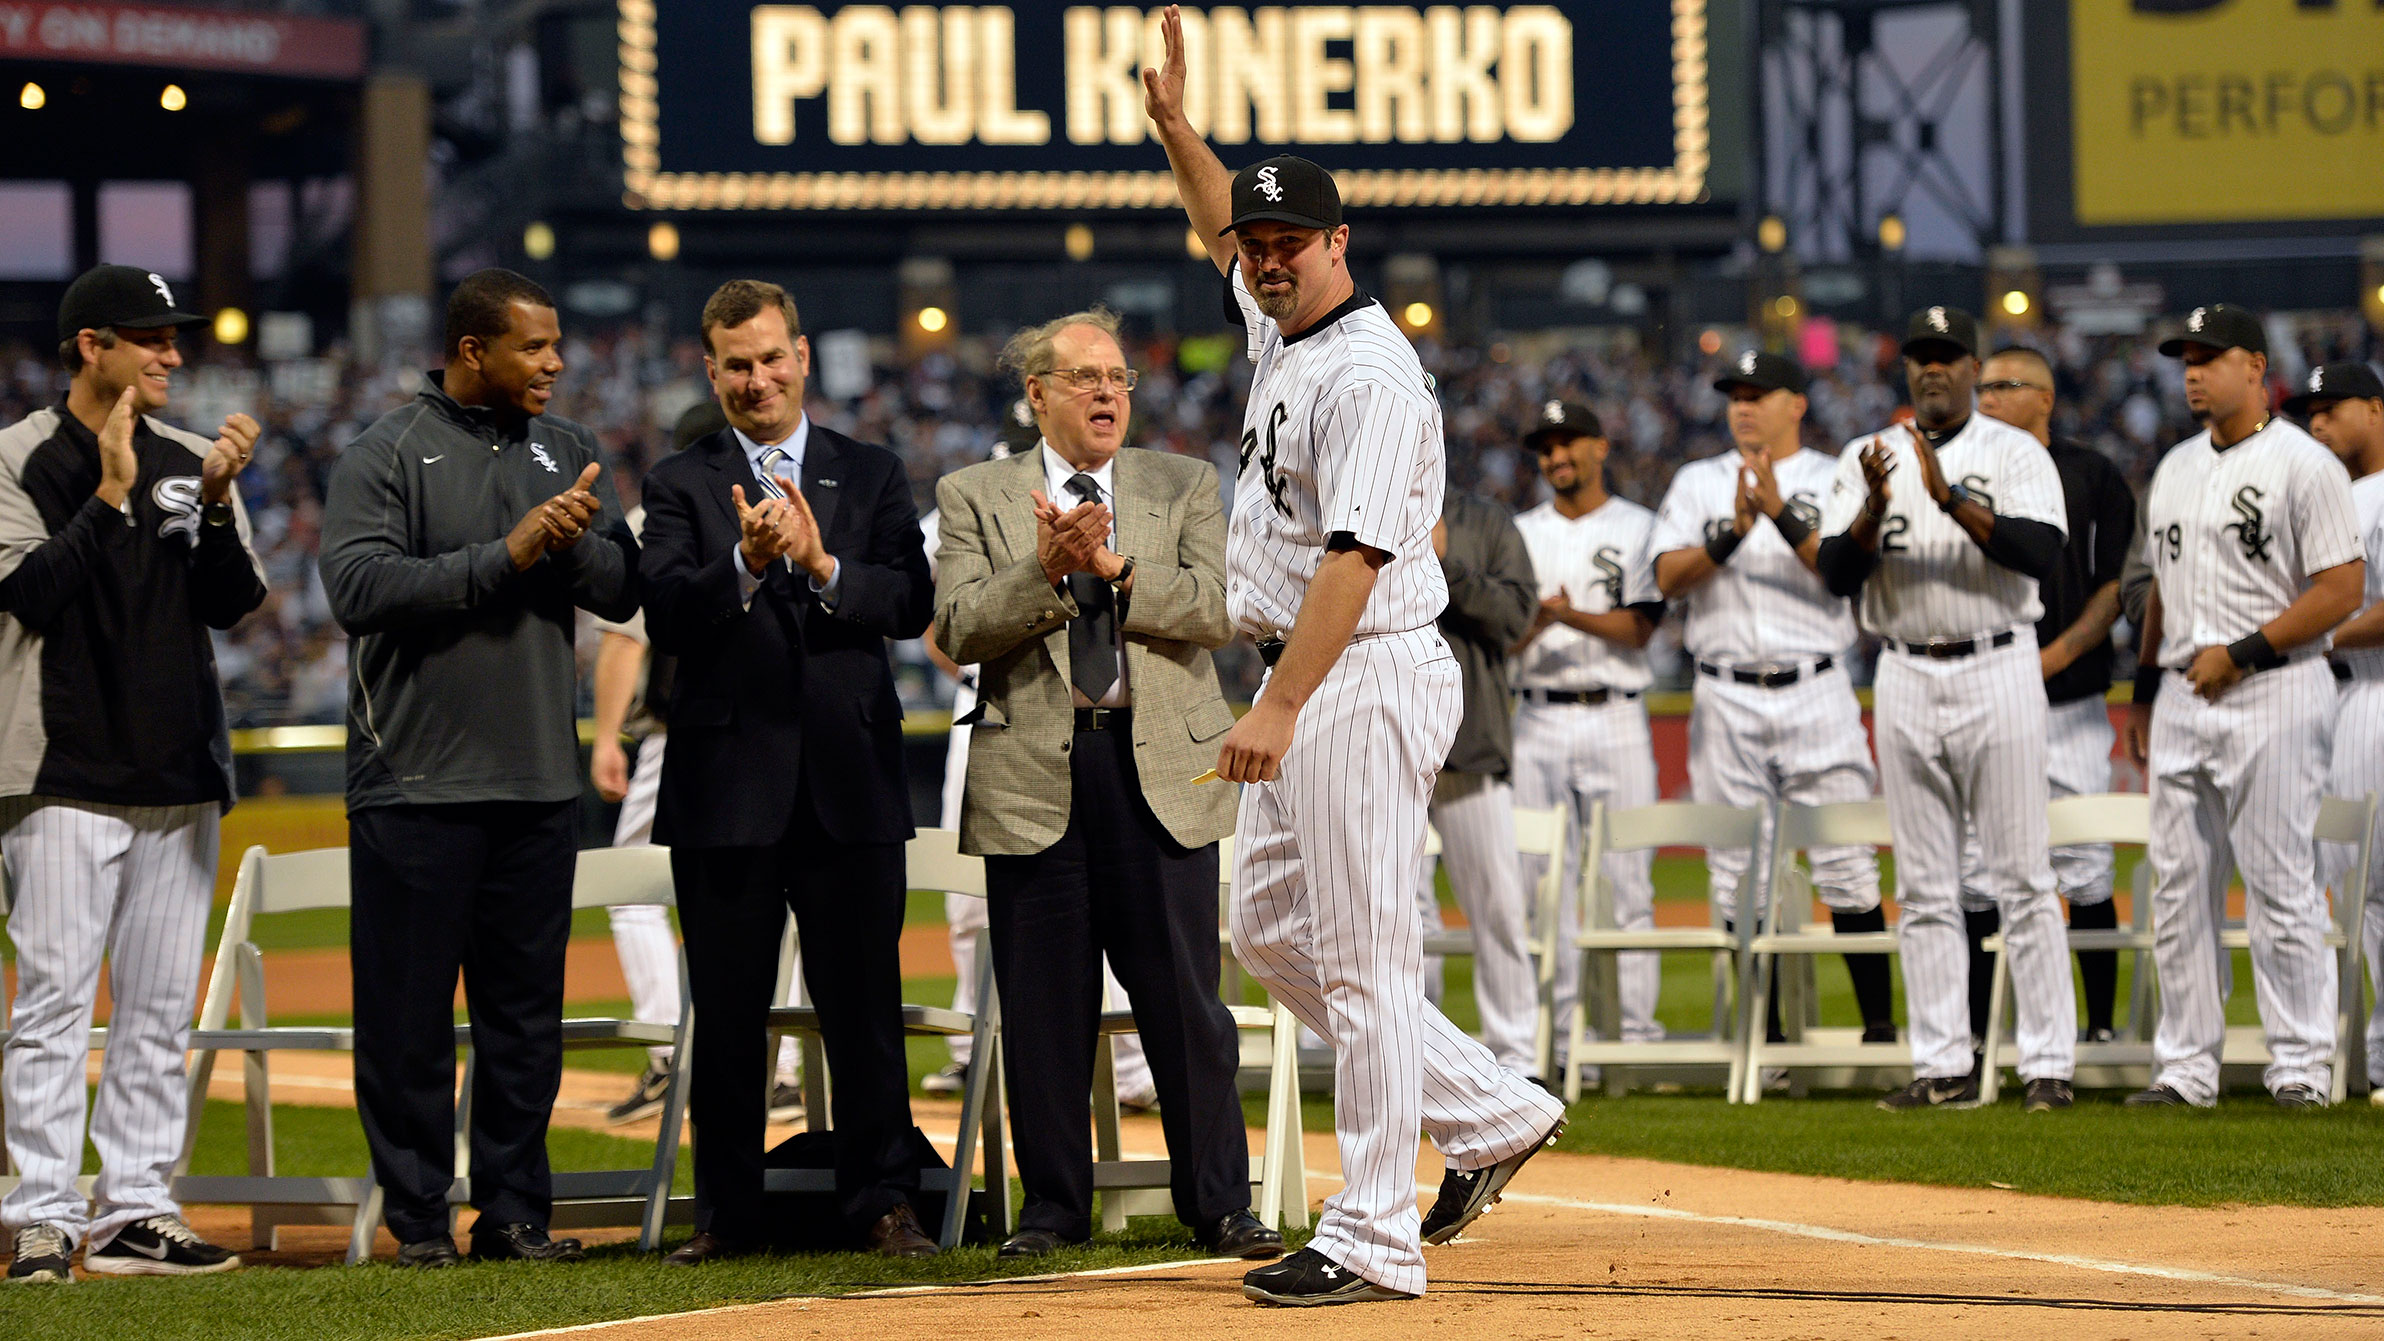 paul-konerko-goodbye